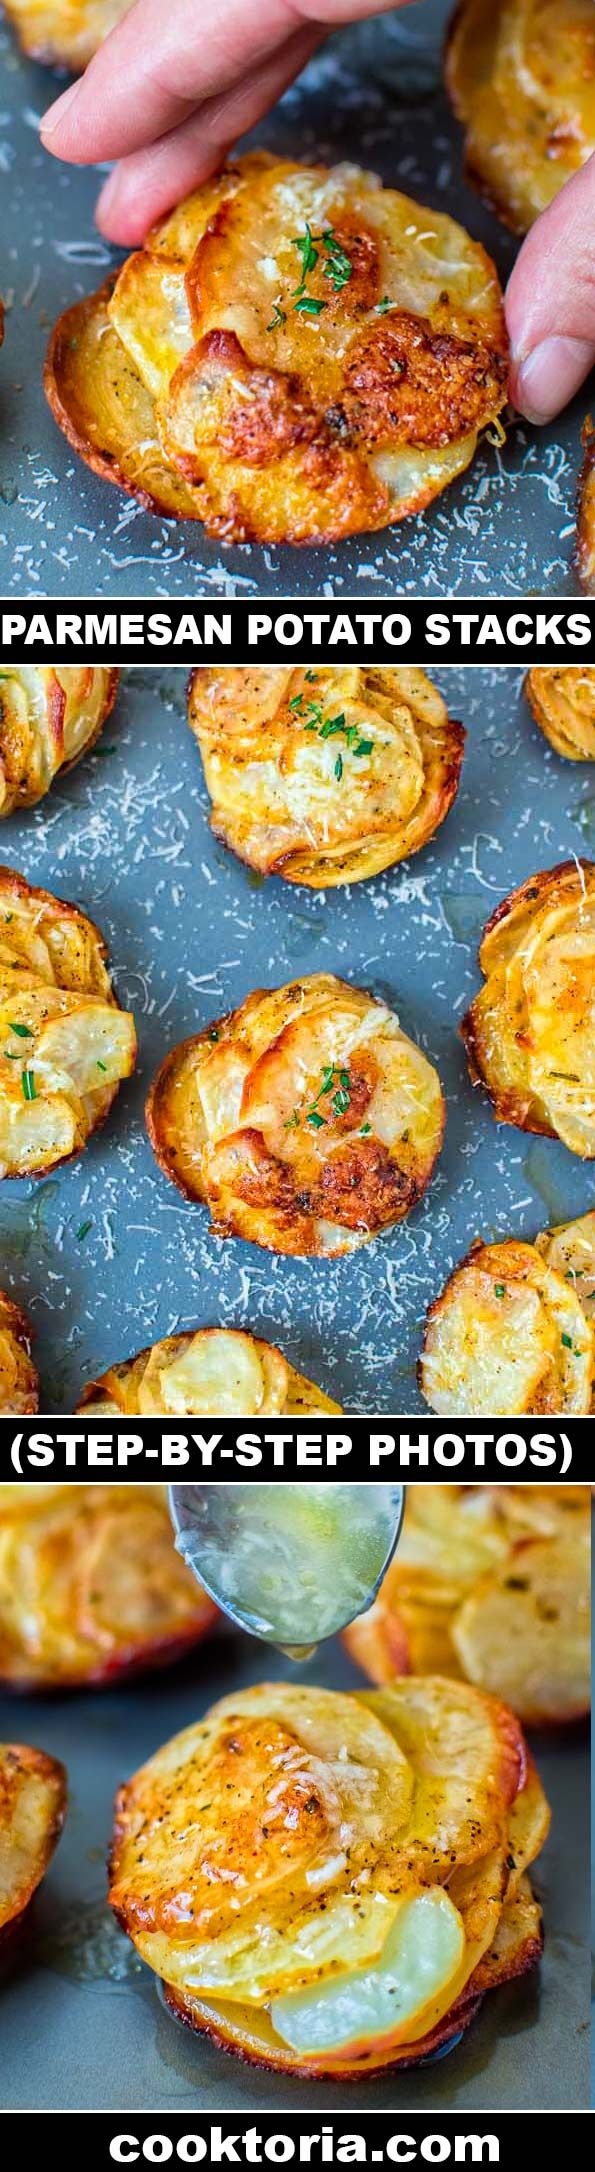 Crispy on the outside and soft on the inside, these flavorful Parmesan Potato Stacks make a great snack, or a side dish. ❤ COOKTORIA.COM